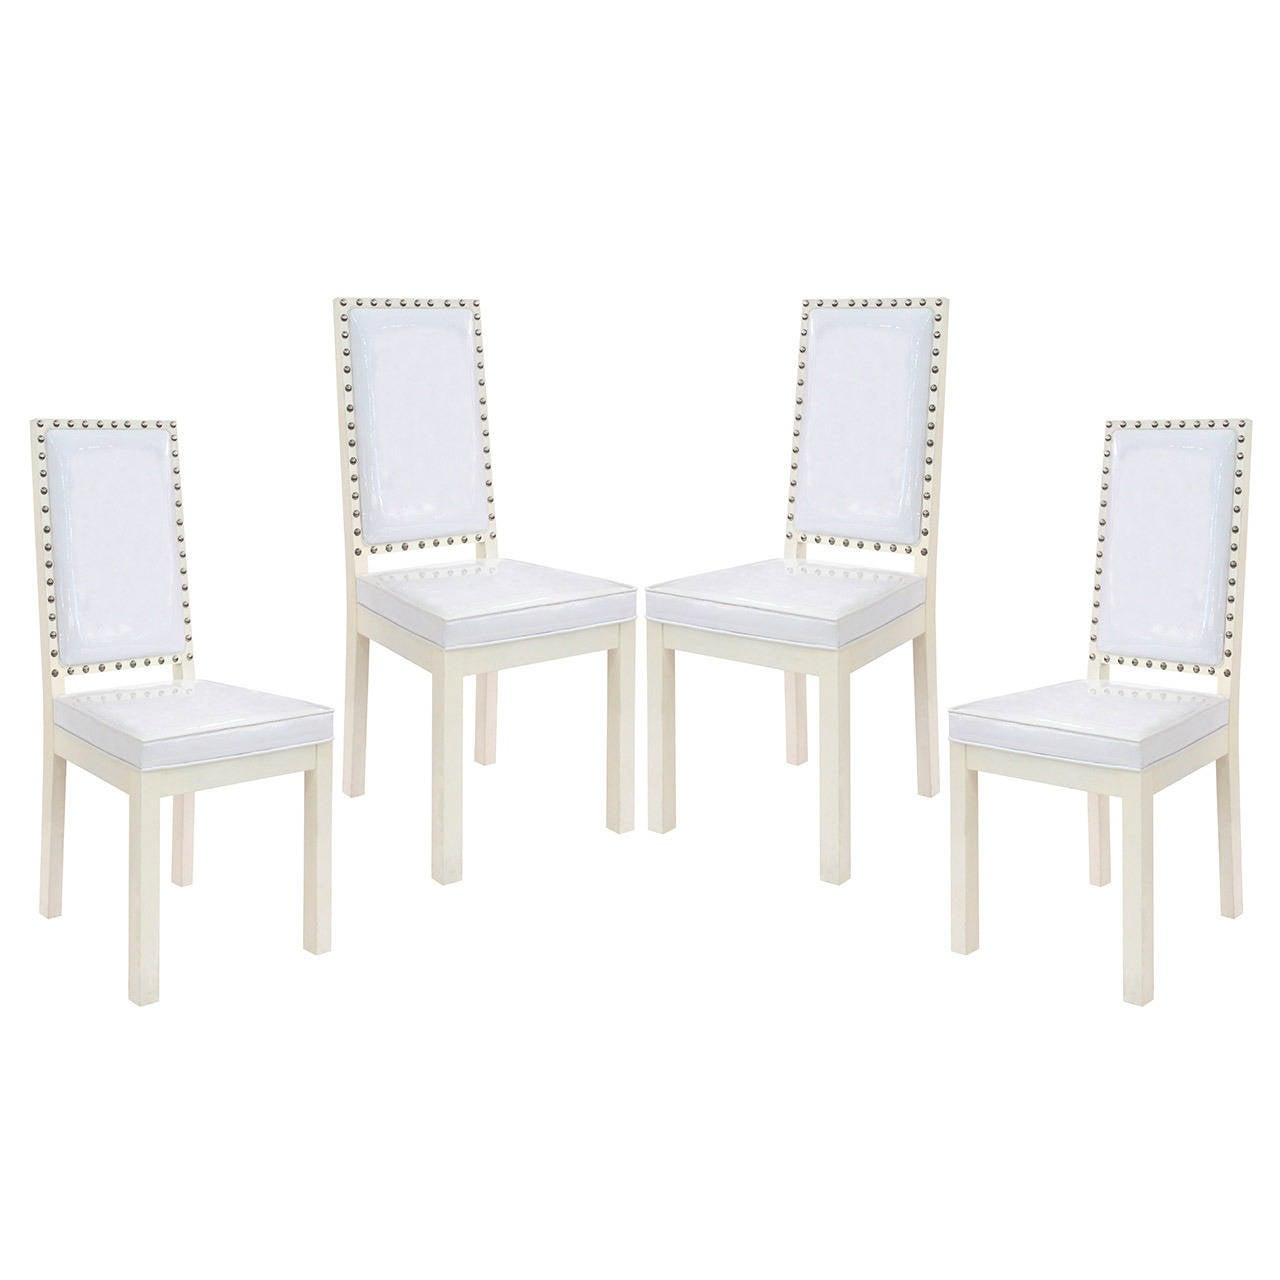 Four Dining or Game Chairs with Studs in the Manner of Tommi Parzinger For Sale